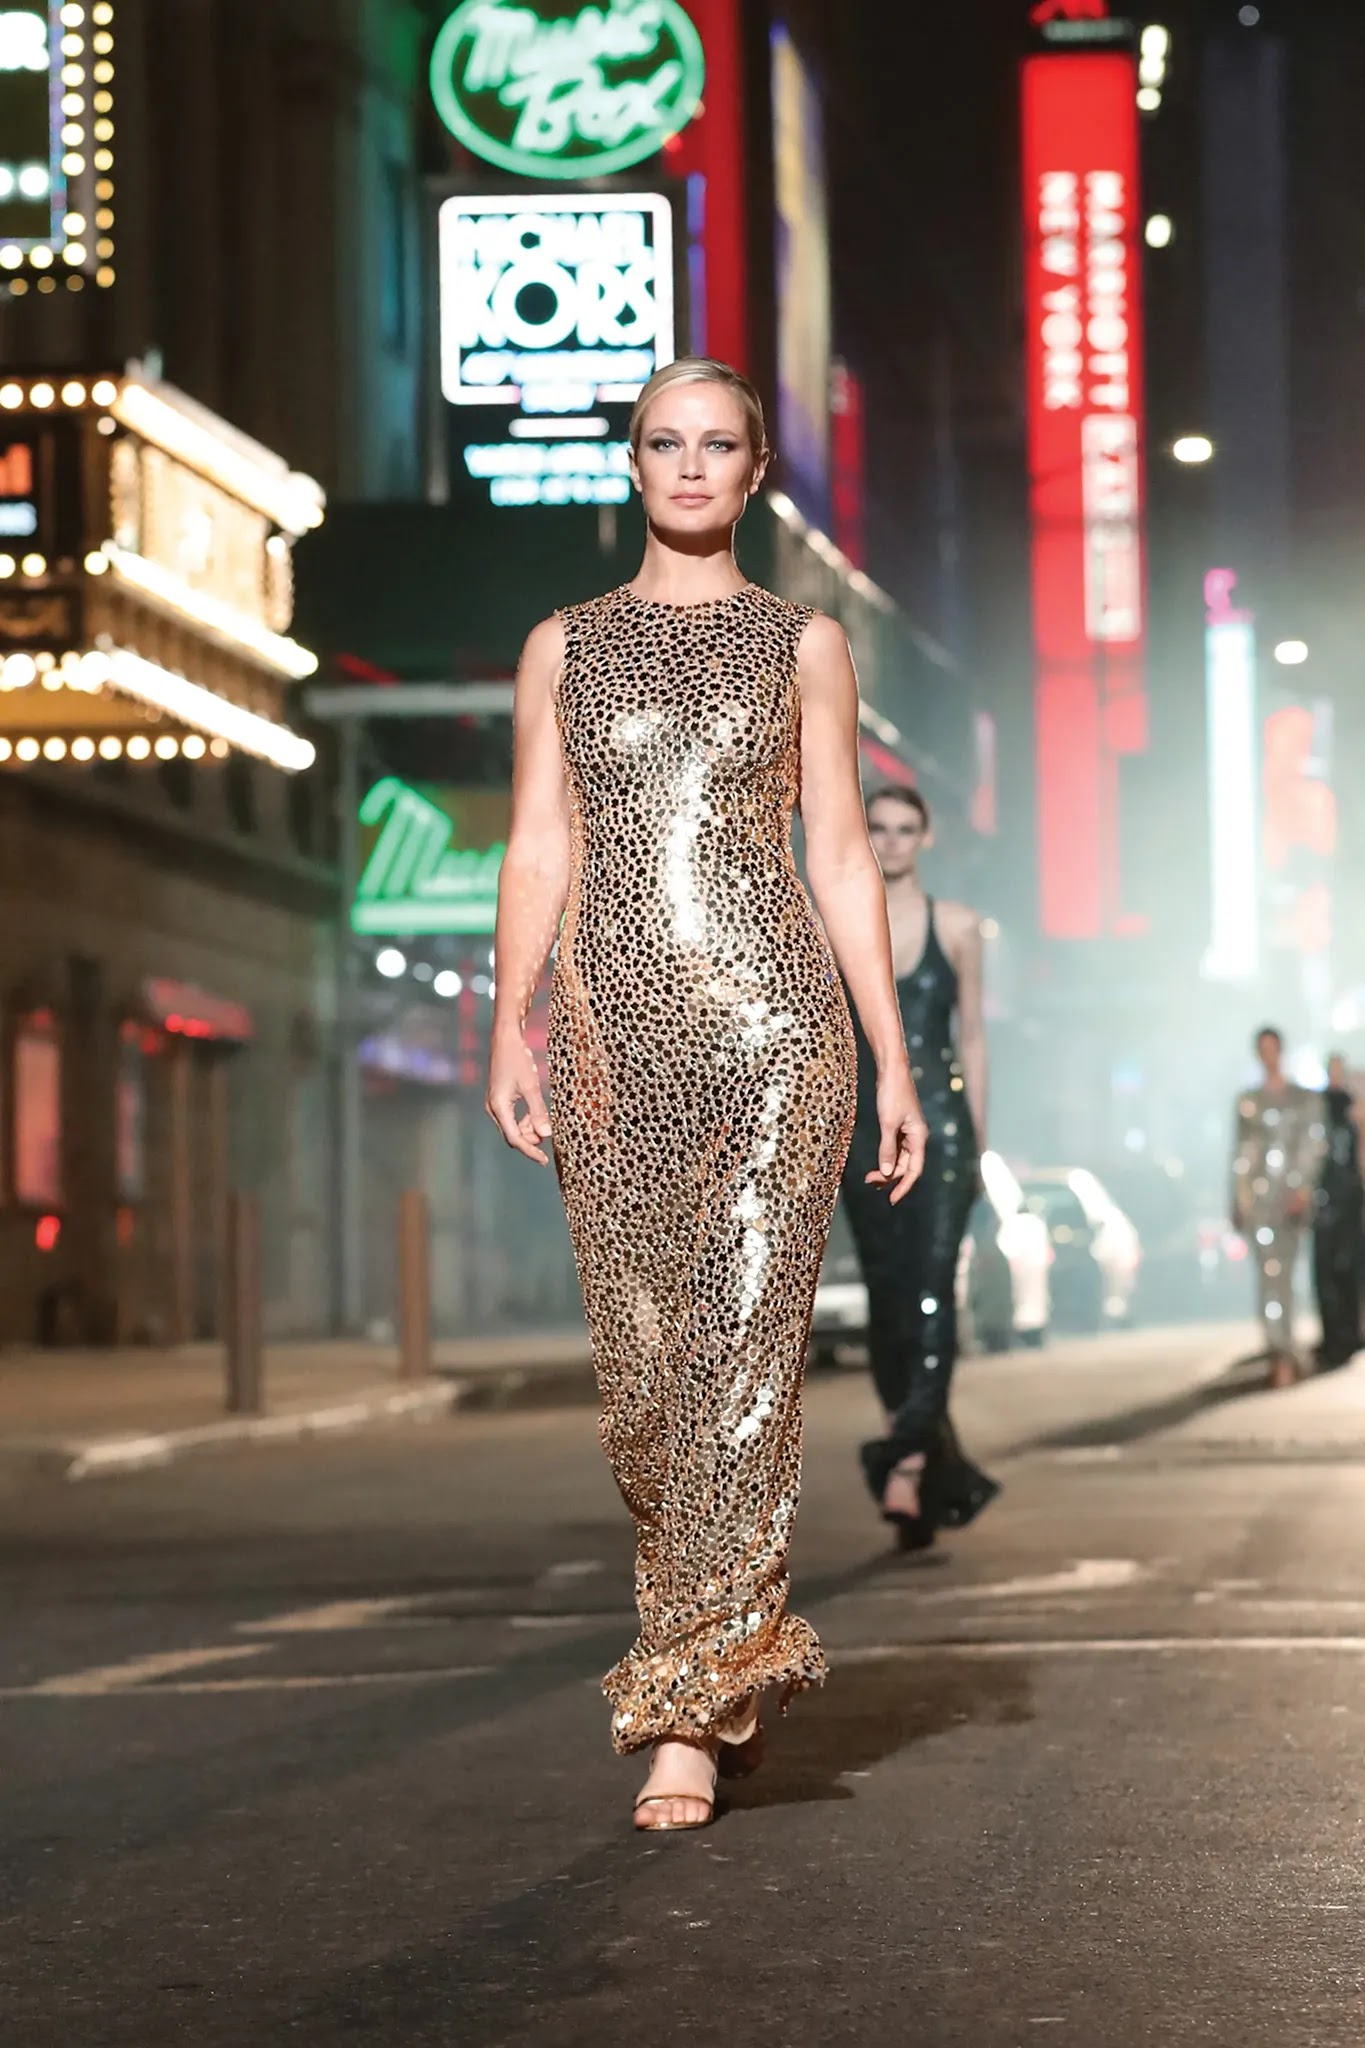 Glamour by Michael Kors